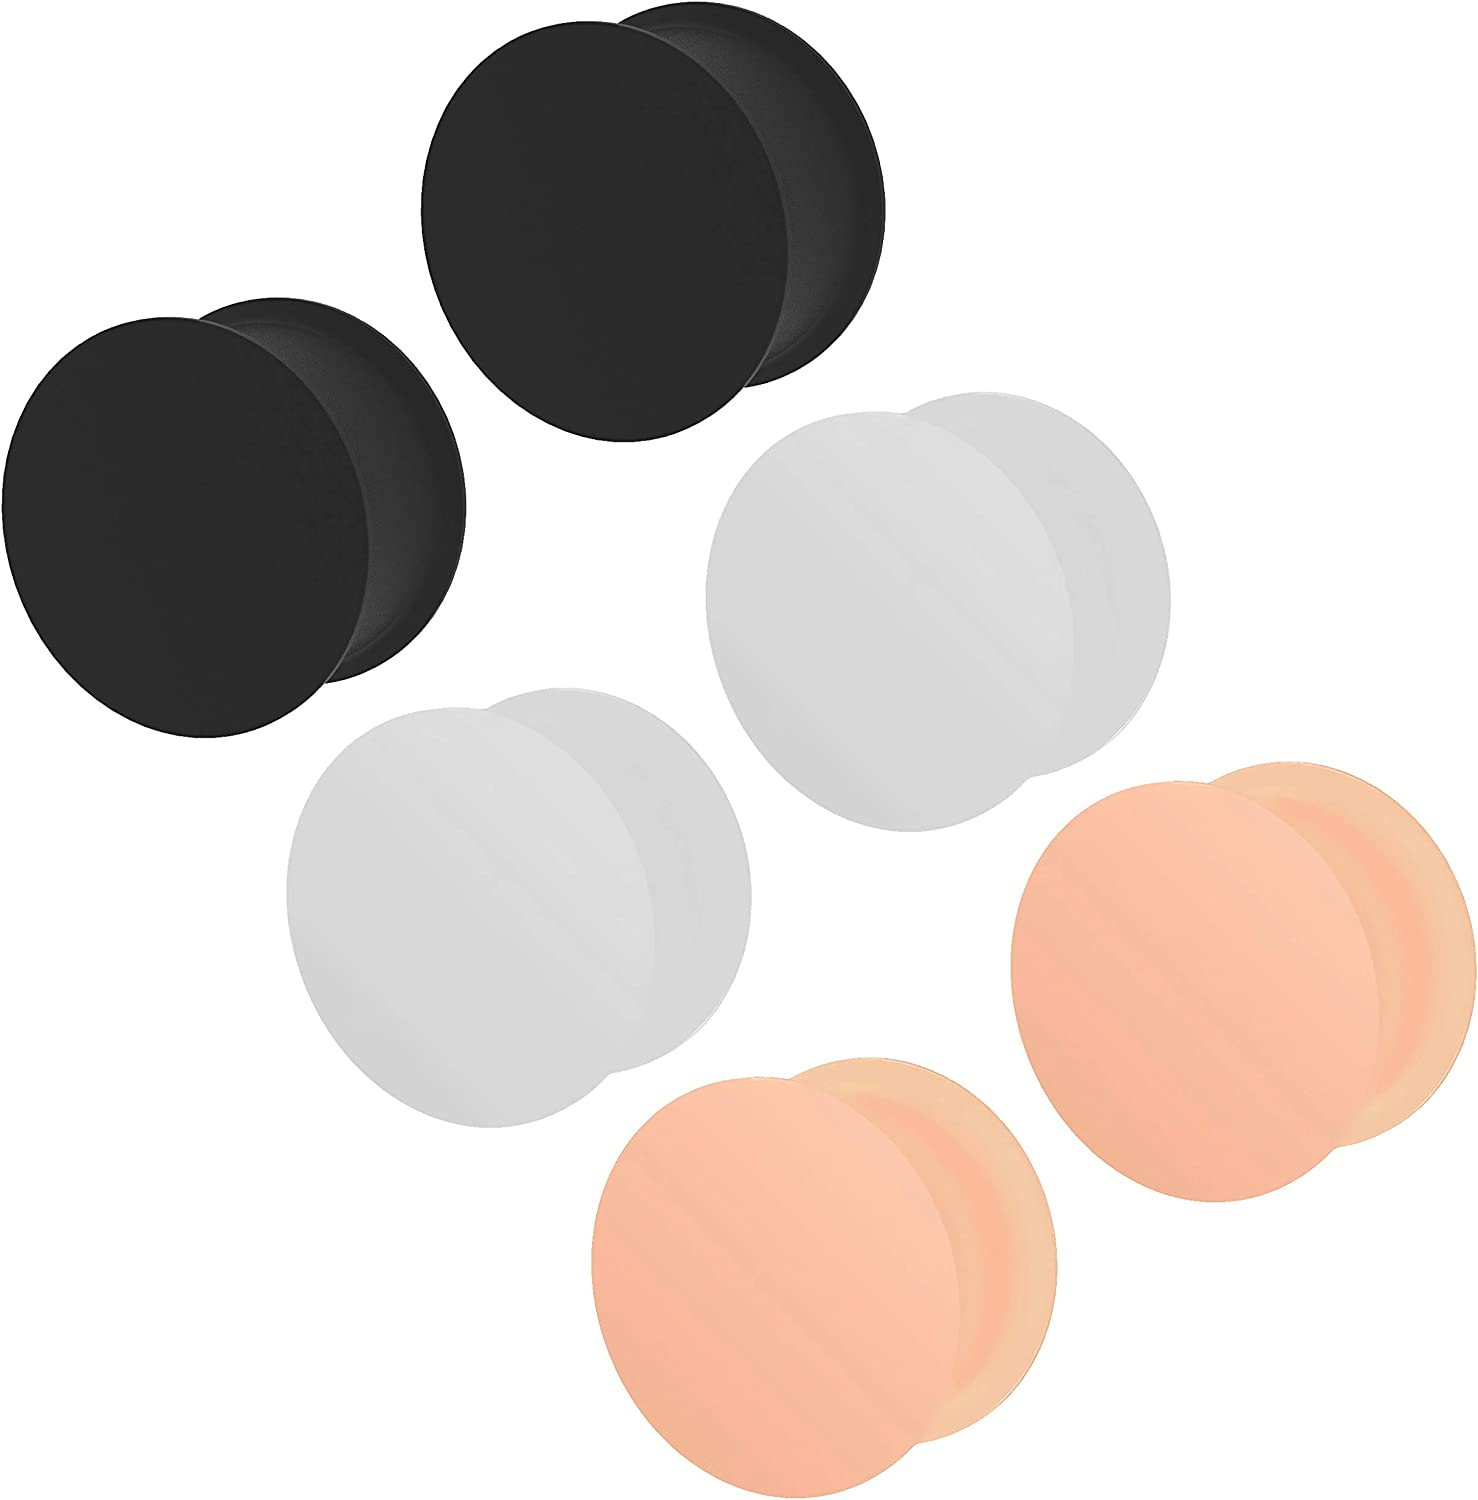 3 Pairs Ear Plug Skin White Black Silicone Double Flare Earrings Soft Solid Gauges Ears Tunnel Piercing Jewelry